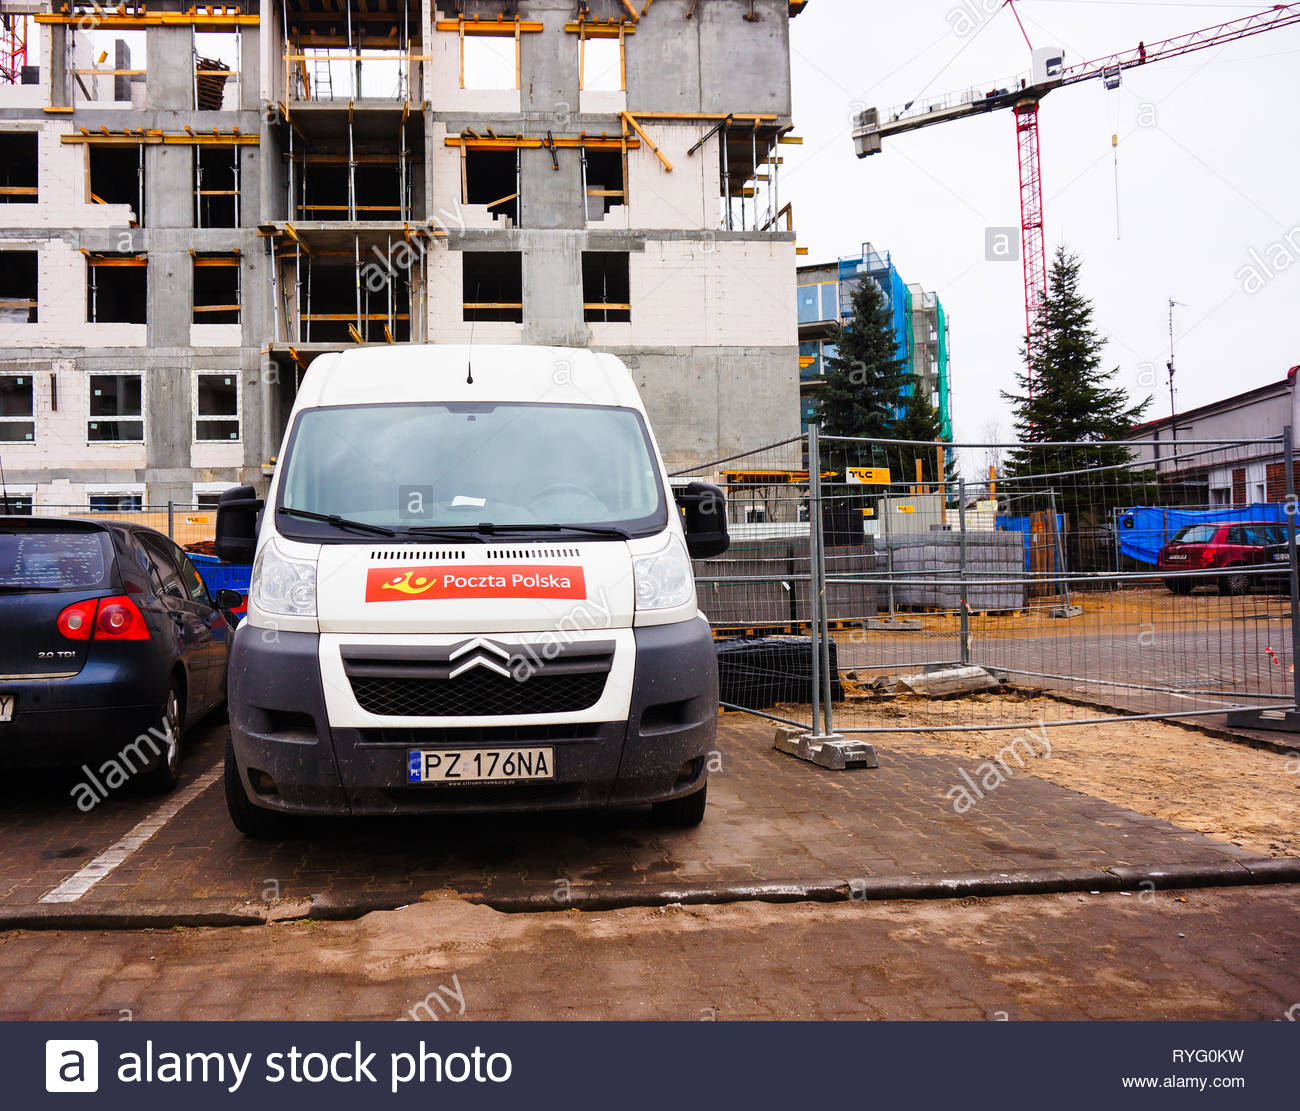 Poznan, Poland - March 3, 2019: Poczta Polksa Citroen delivery van parked on a parking spot in front of a apartment building under construction. Stock Photo